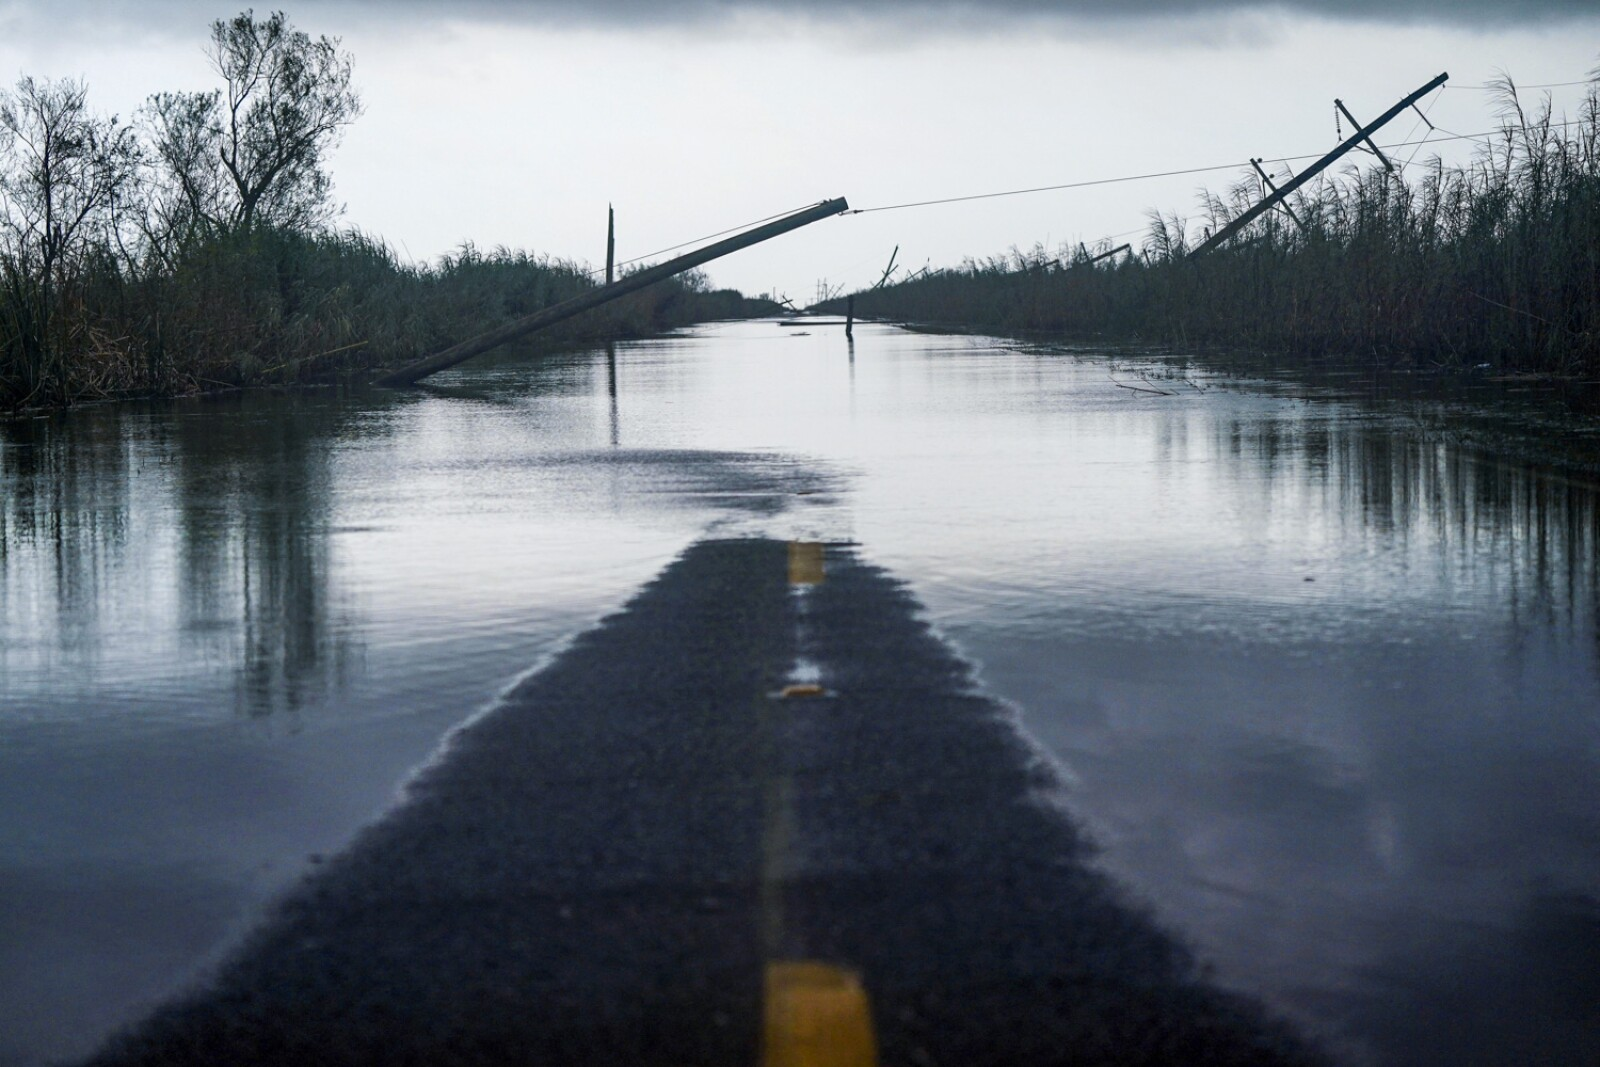 Downed power lines and flooding is seen after Hurricane Laura passed through the area in Creole